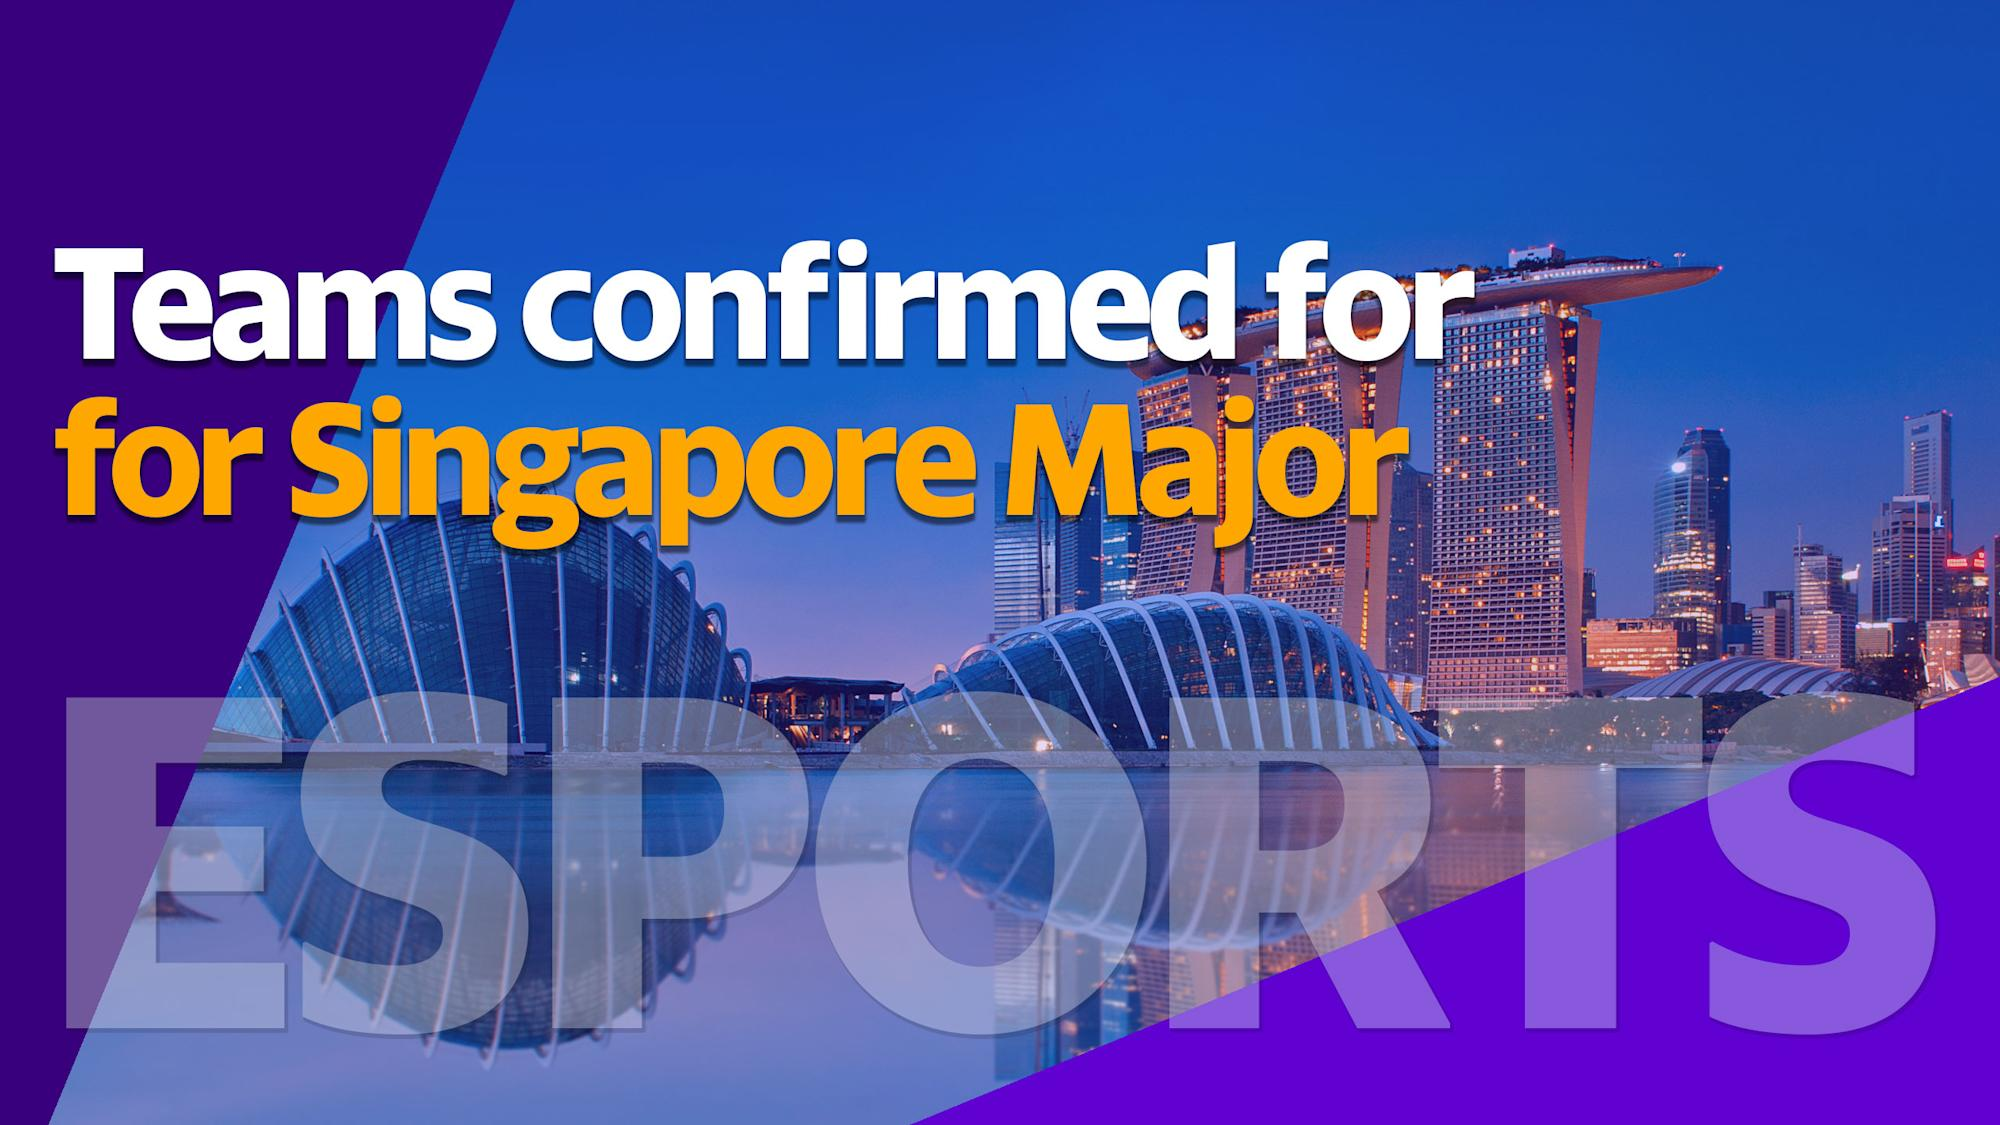 Teams confirmed for Singapore Major thumbnail